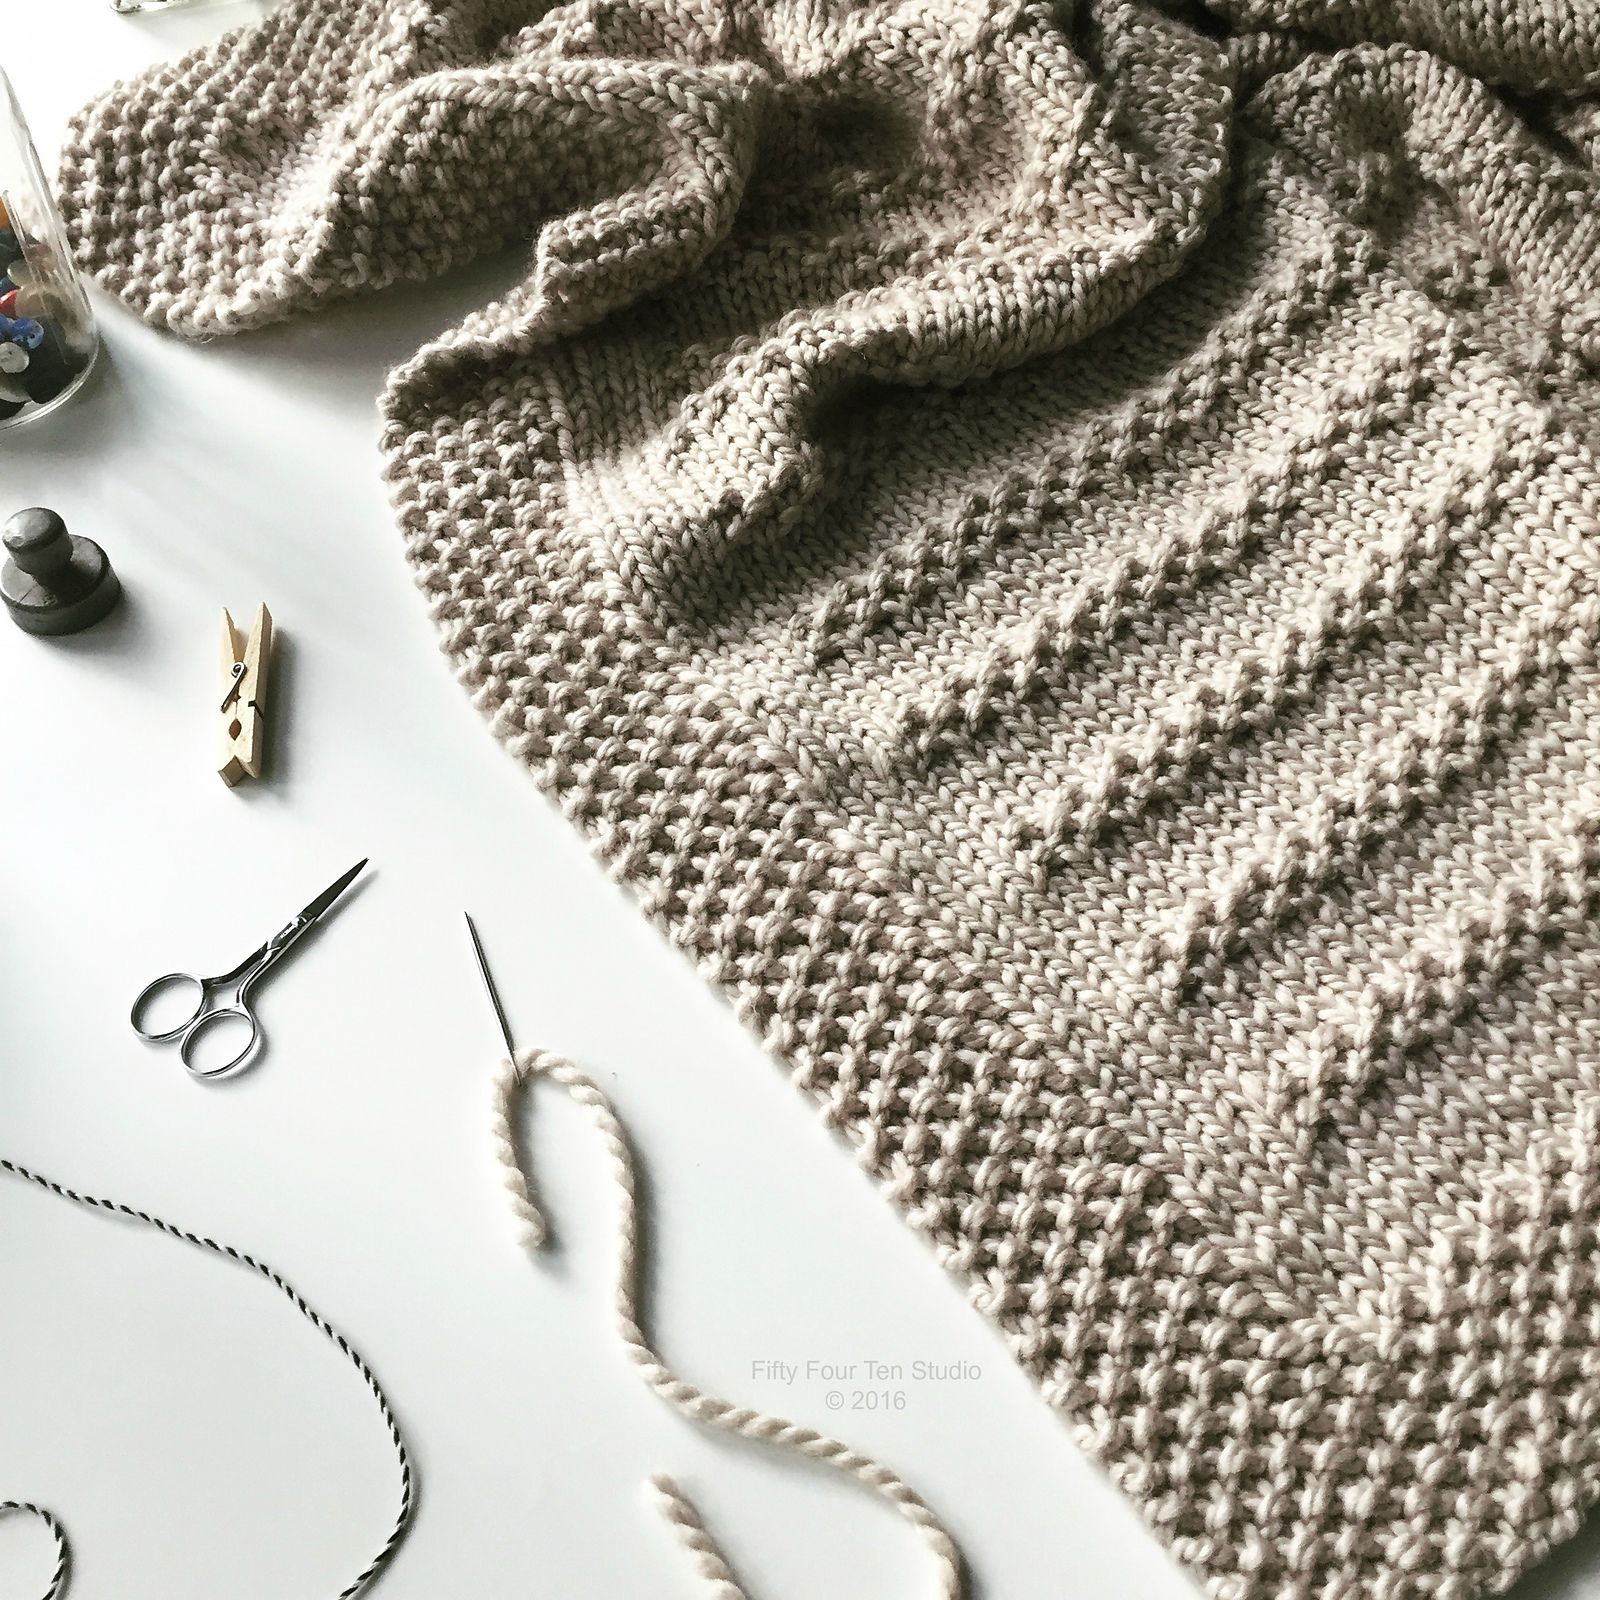 Ravelry: Stones in the Road by Fifty Four Ten Studio